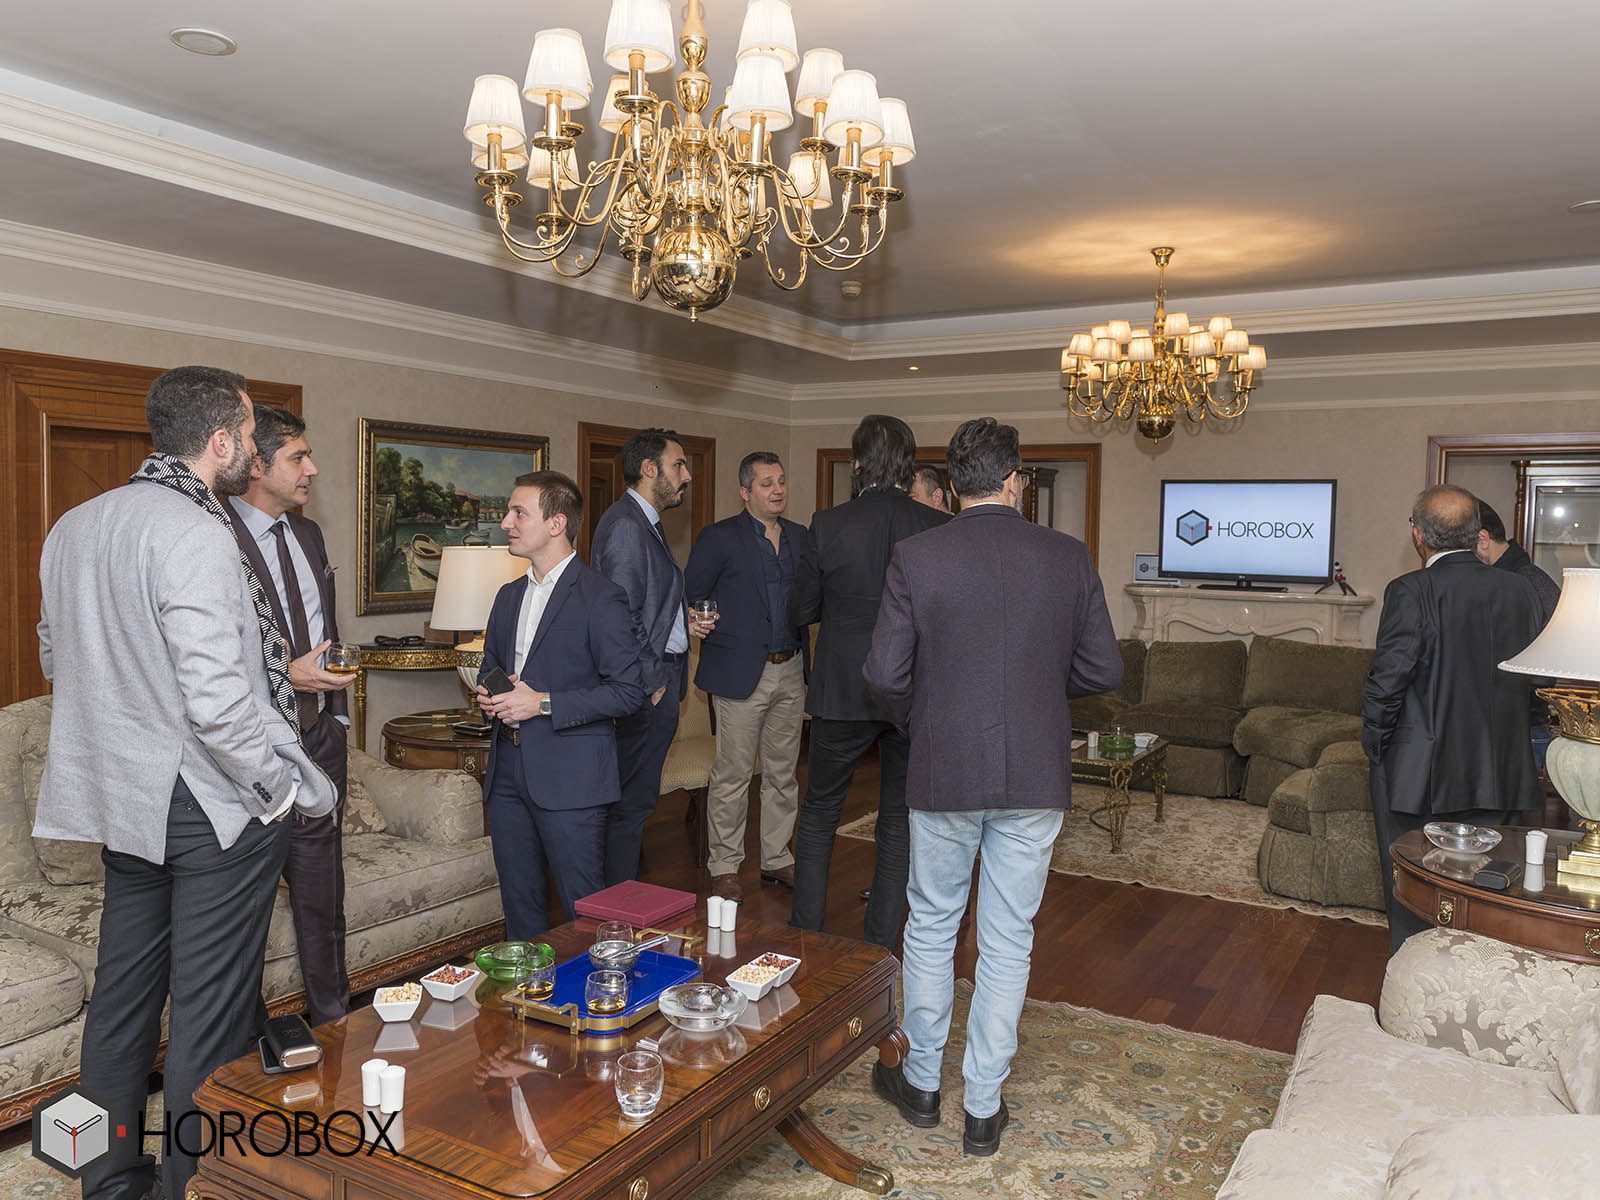 horobox-inside-ritz-carlton-event-11-.jpg